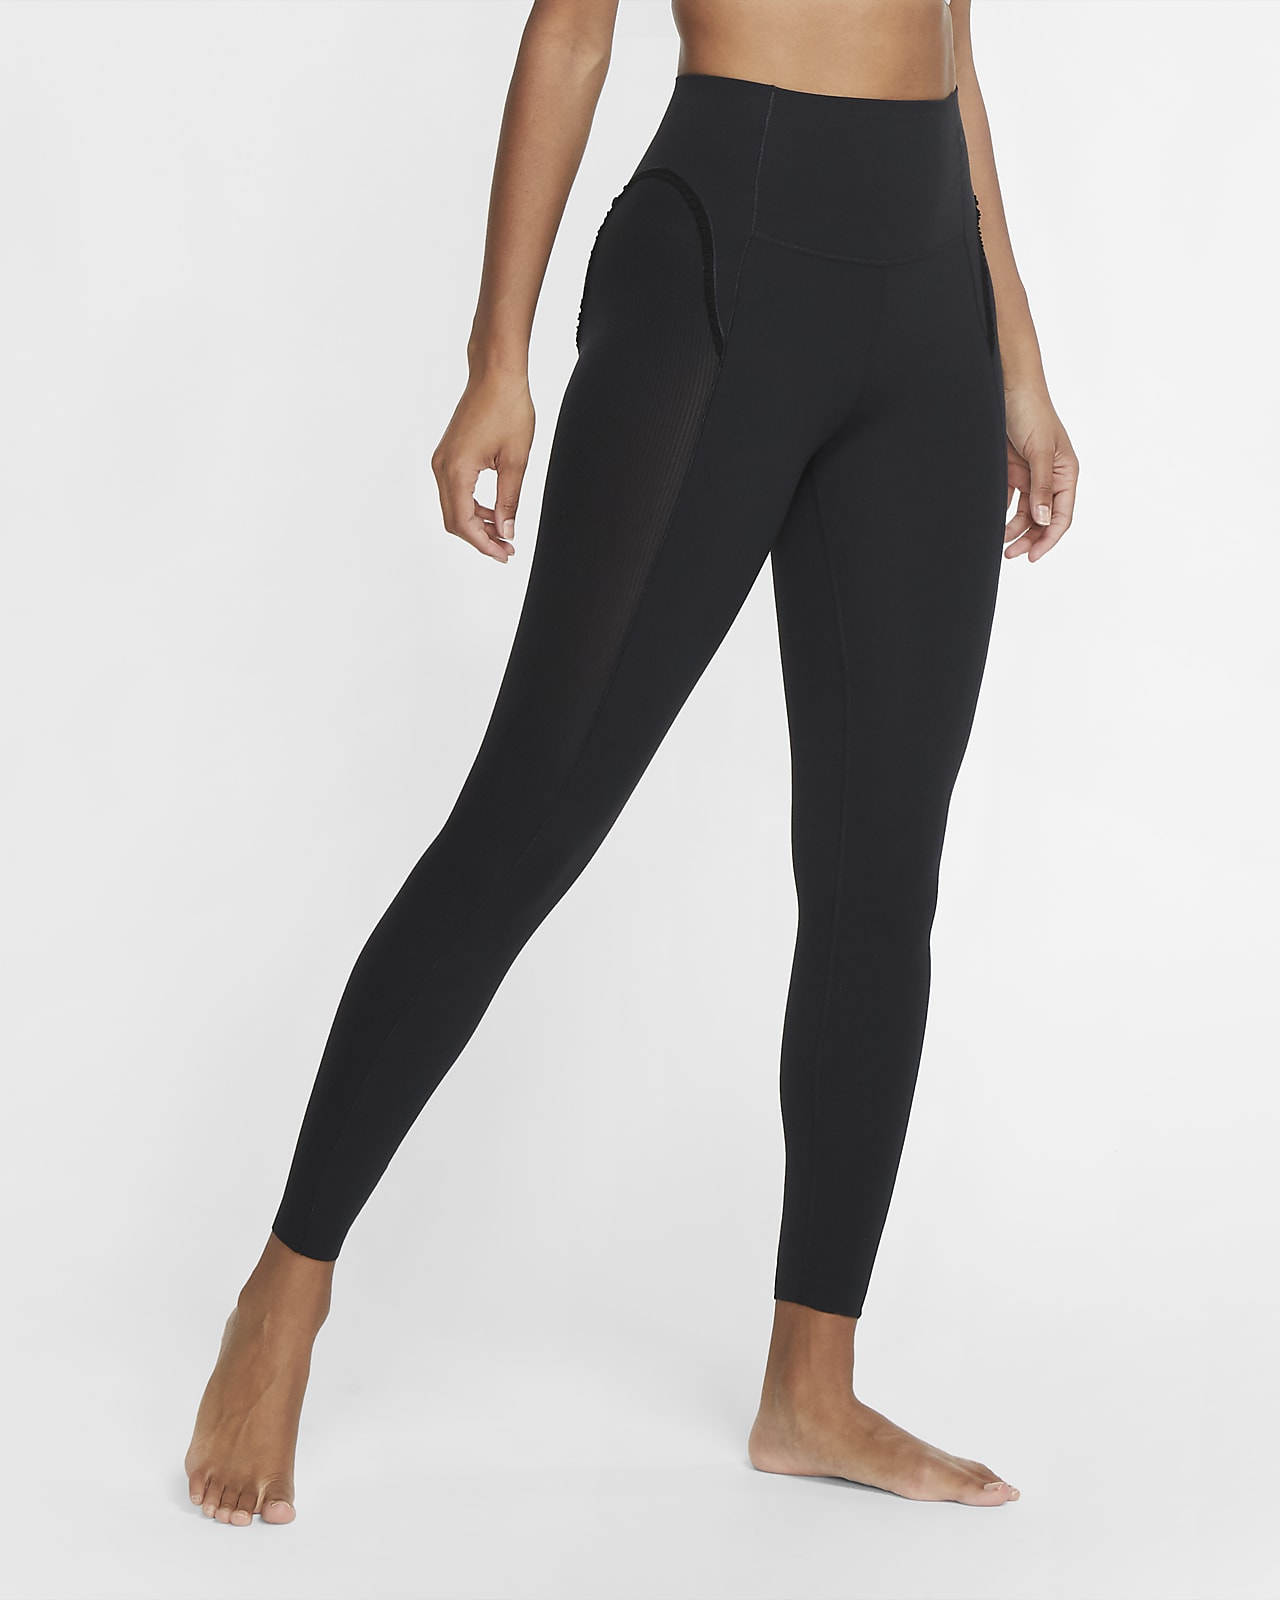 Nike Yoga Luxe Women's Infinalon Ruffled 7/8 Tights